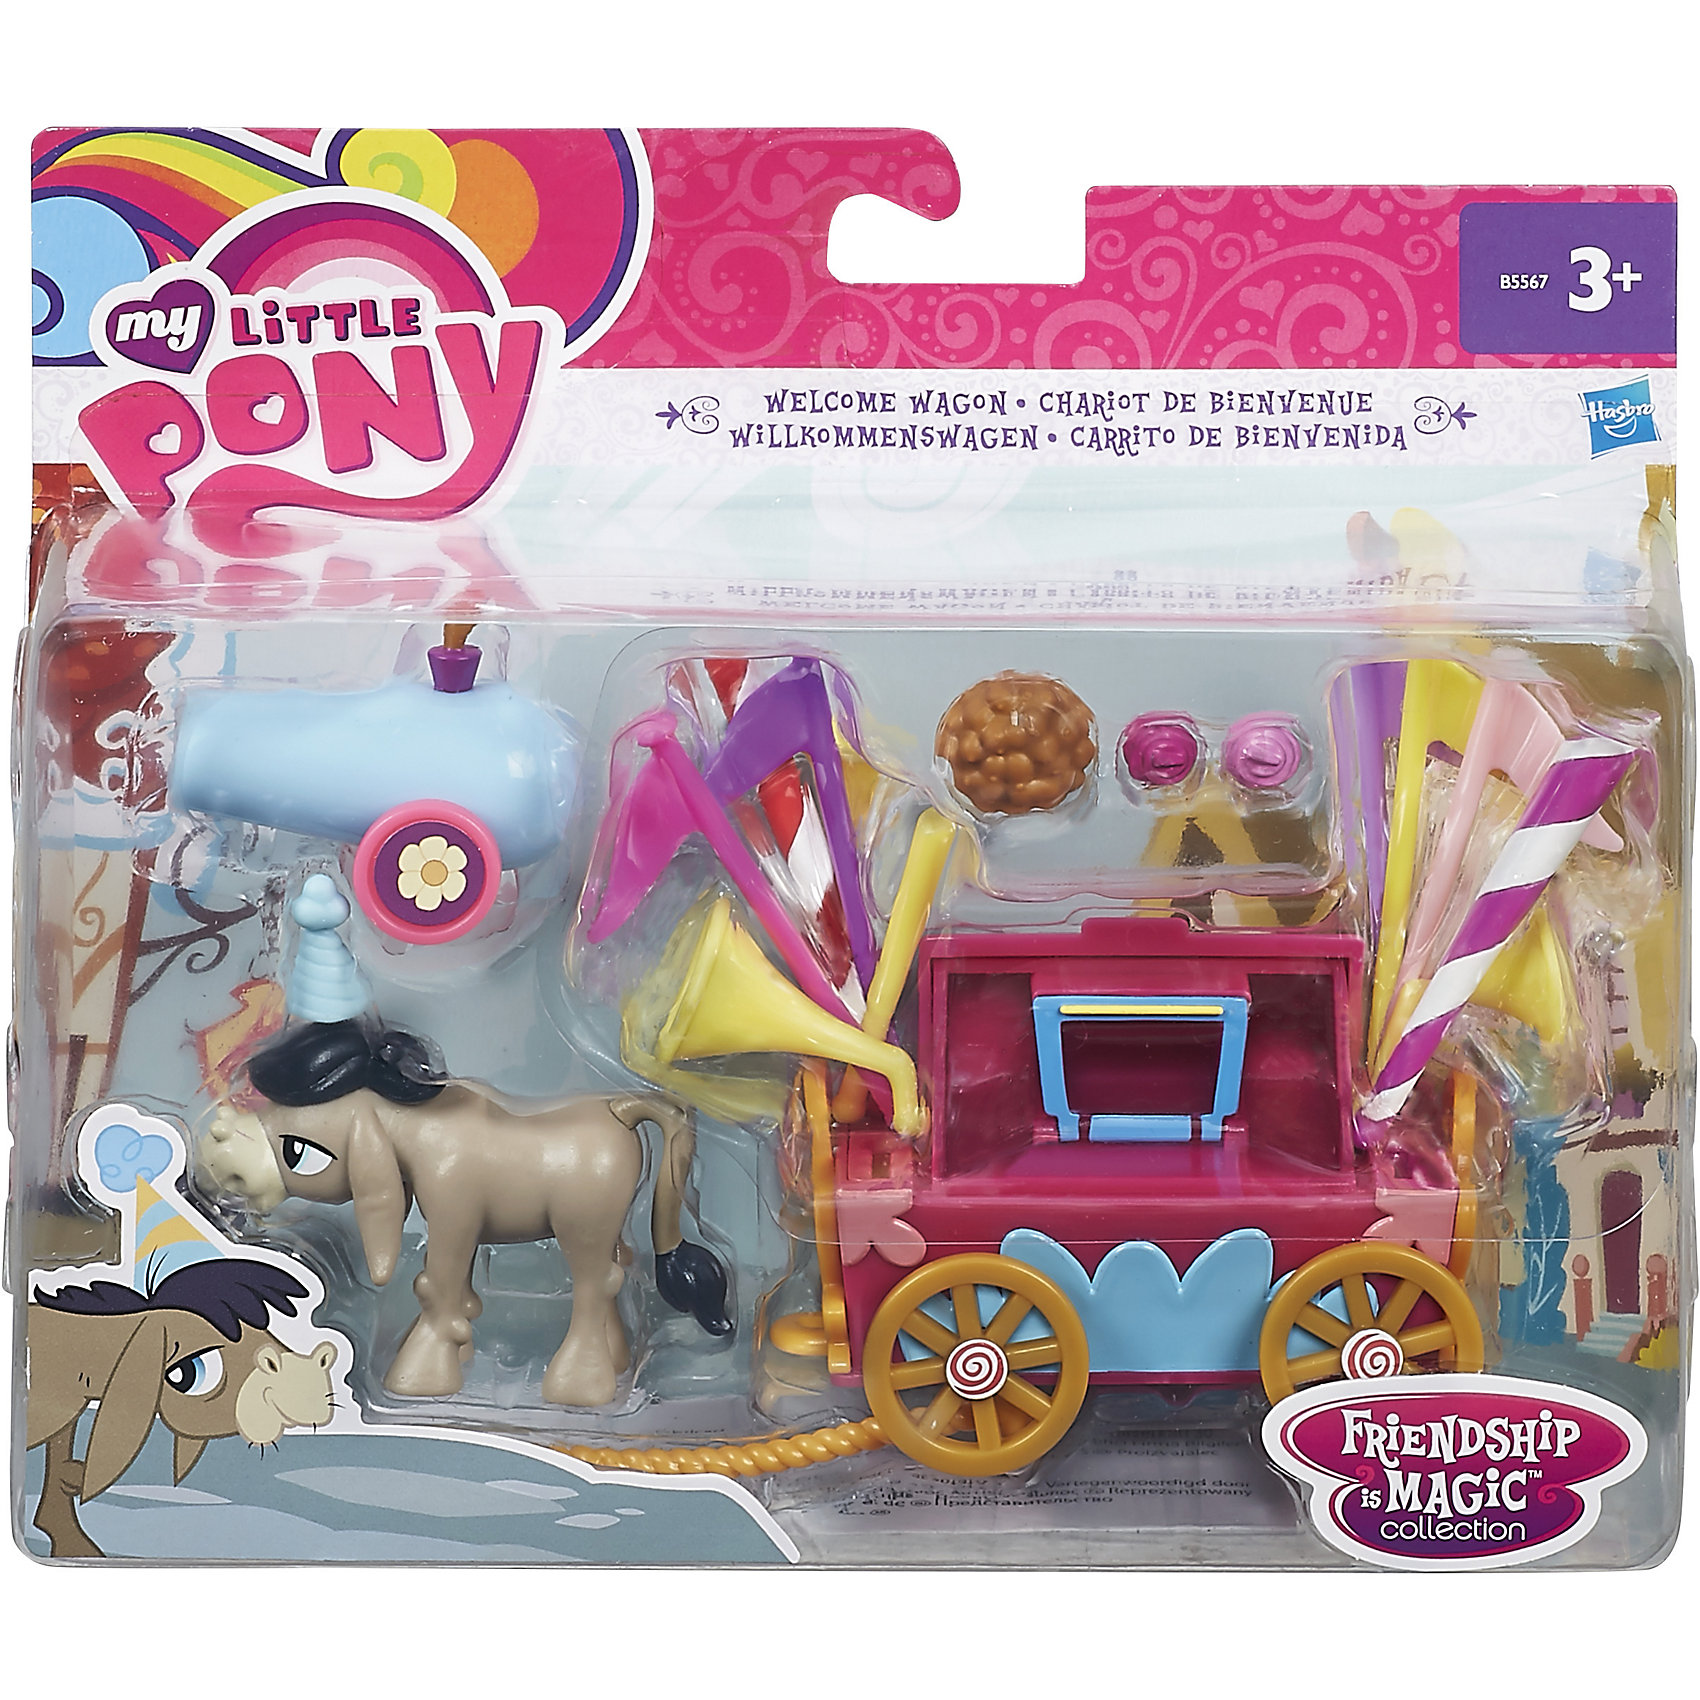 ������������� ������� ����-����� ����, My little Pony, B3597/B5567 (Hasbro)